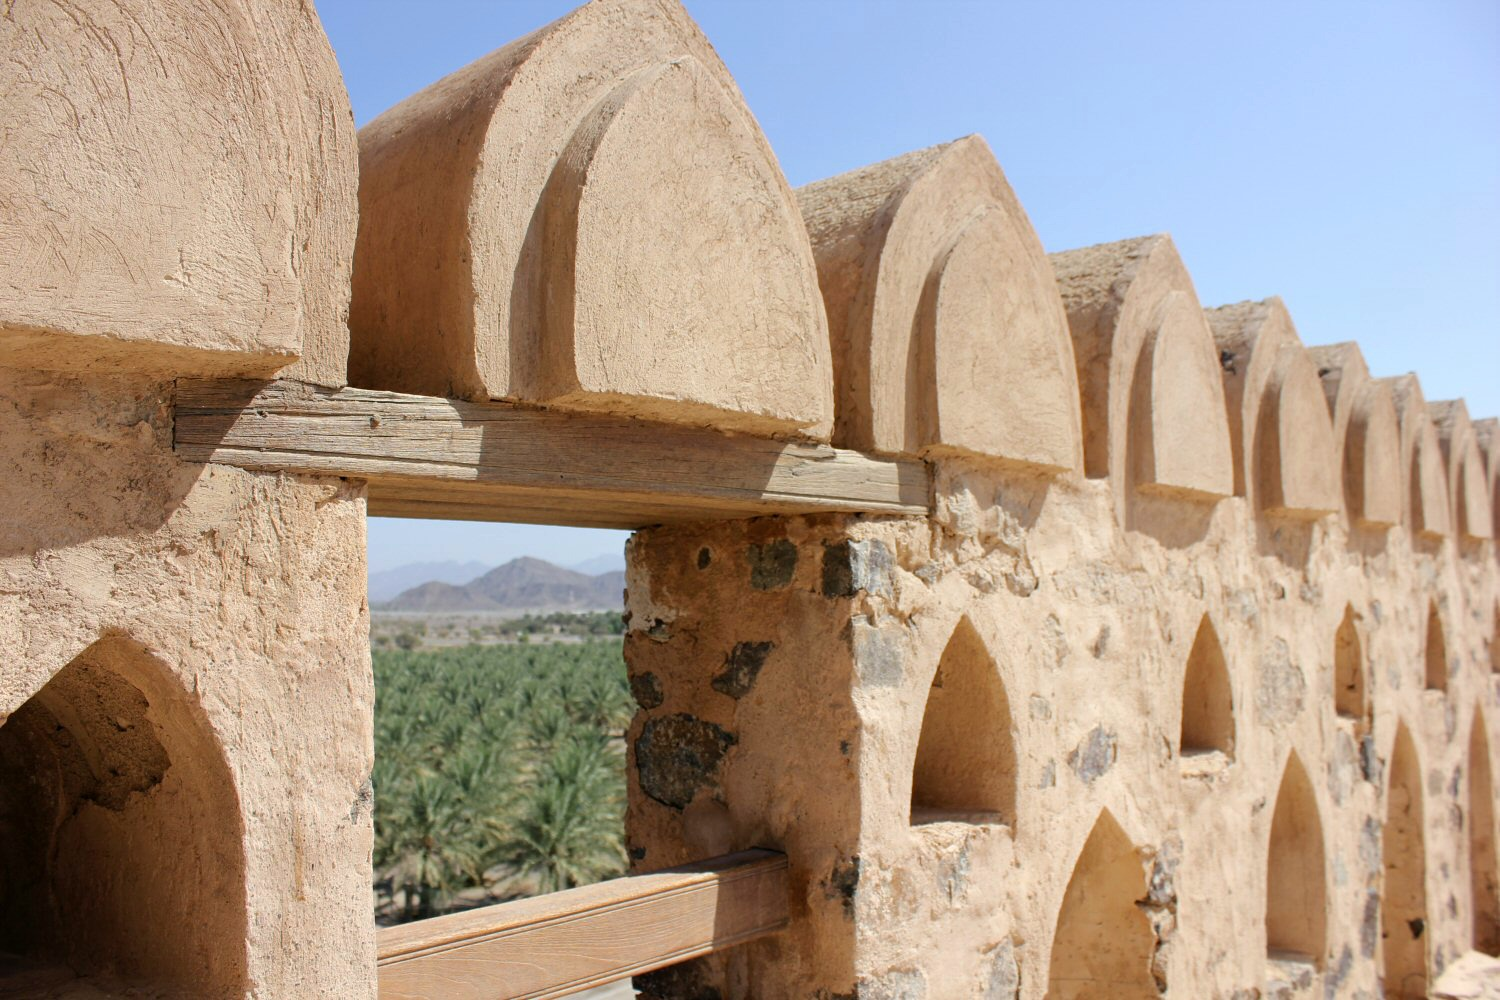 A view through the roof fortifications to palm trees from Jabrin Castle in Oman - my nine reasons to visit Oman with kids